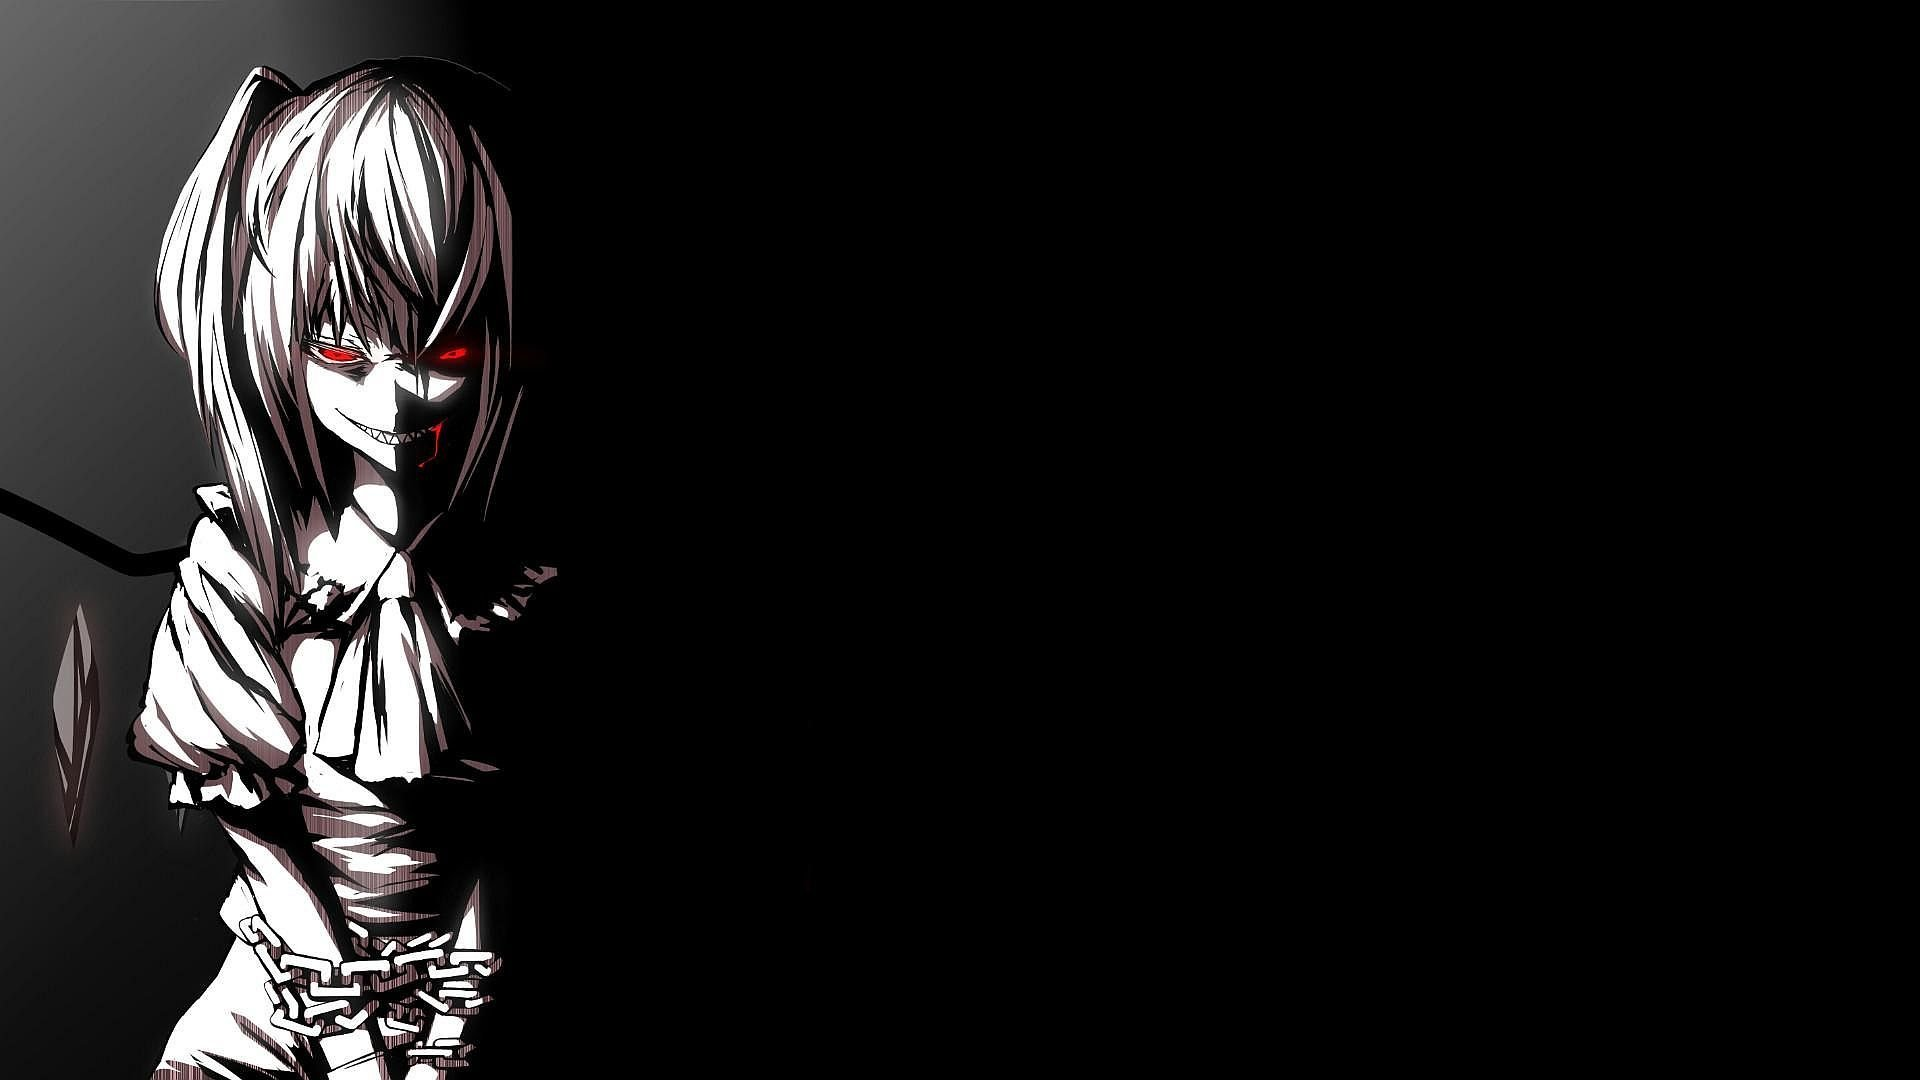 45 Dark Anime Girl Wallpaper On Wallpapersafari